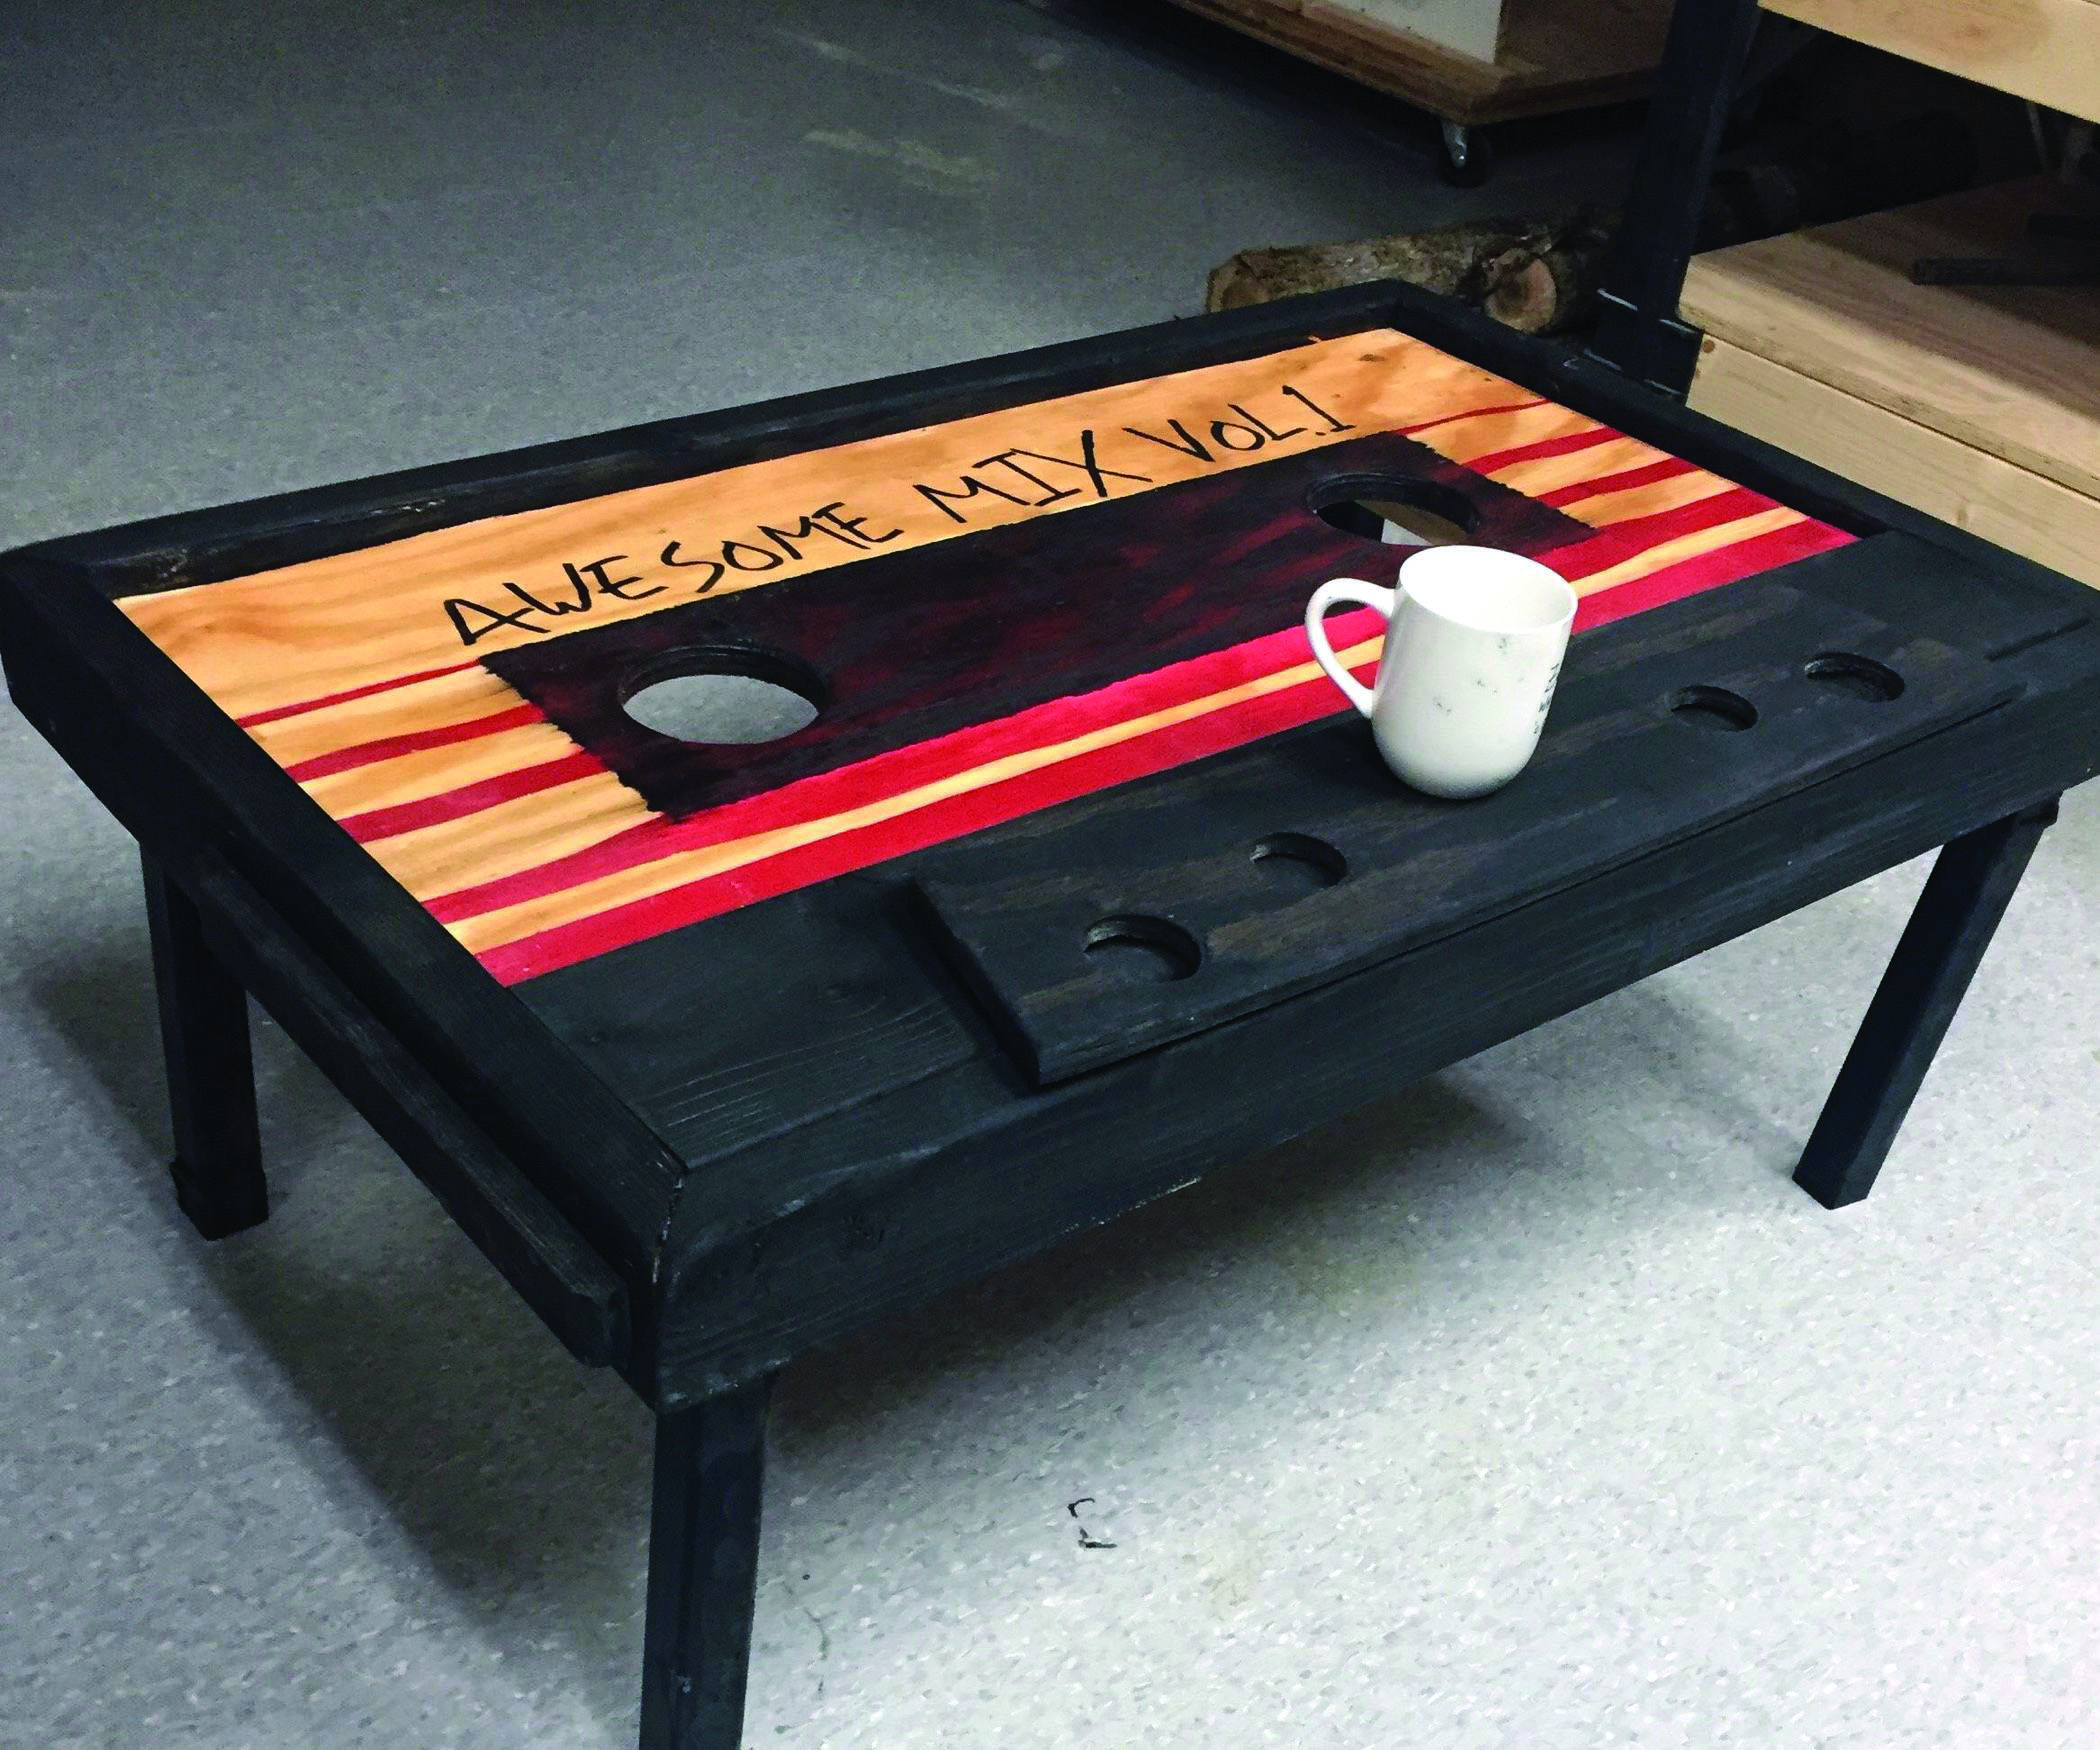 Awesome Coffee Table Ideas Upcycled furniture diy, Diy